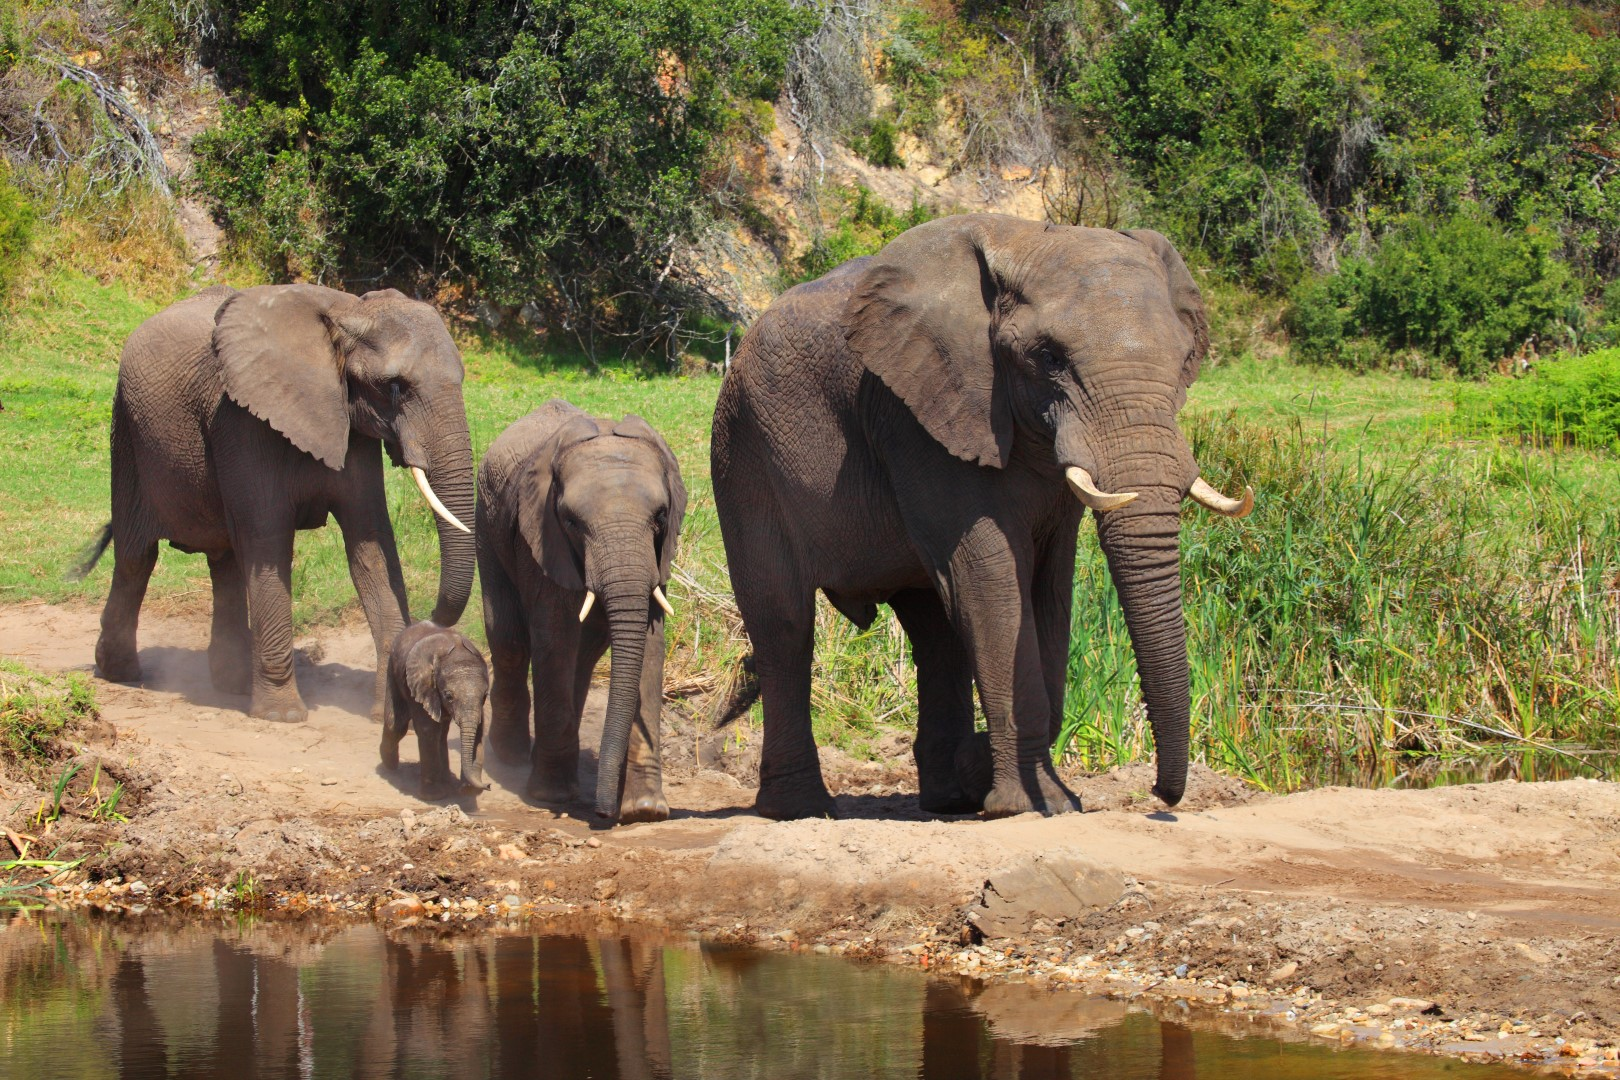 Elephant family at botlierskop